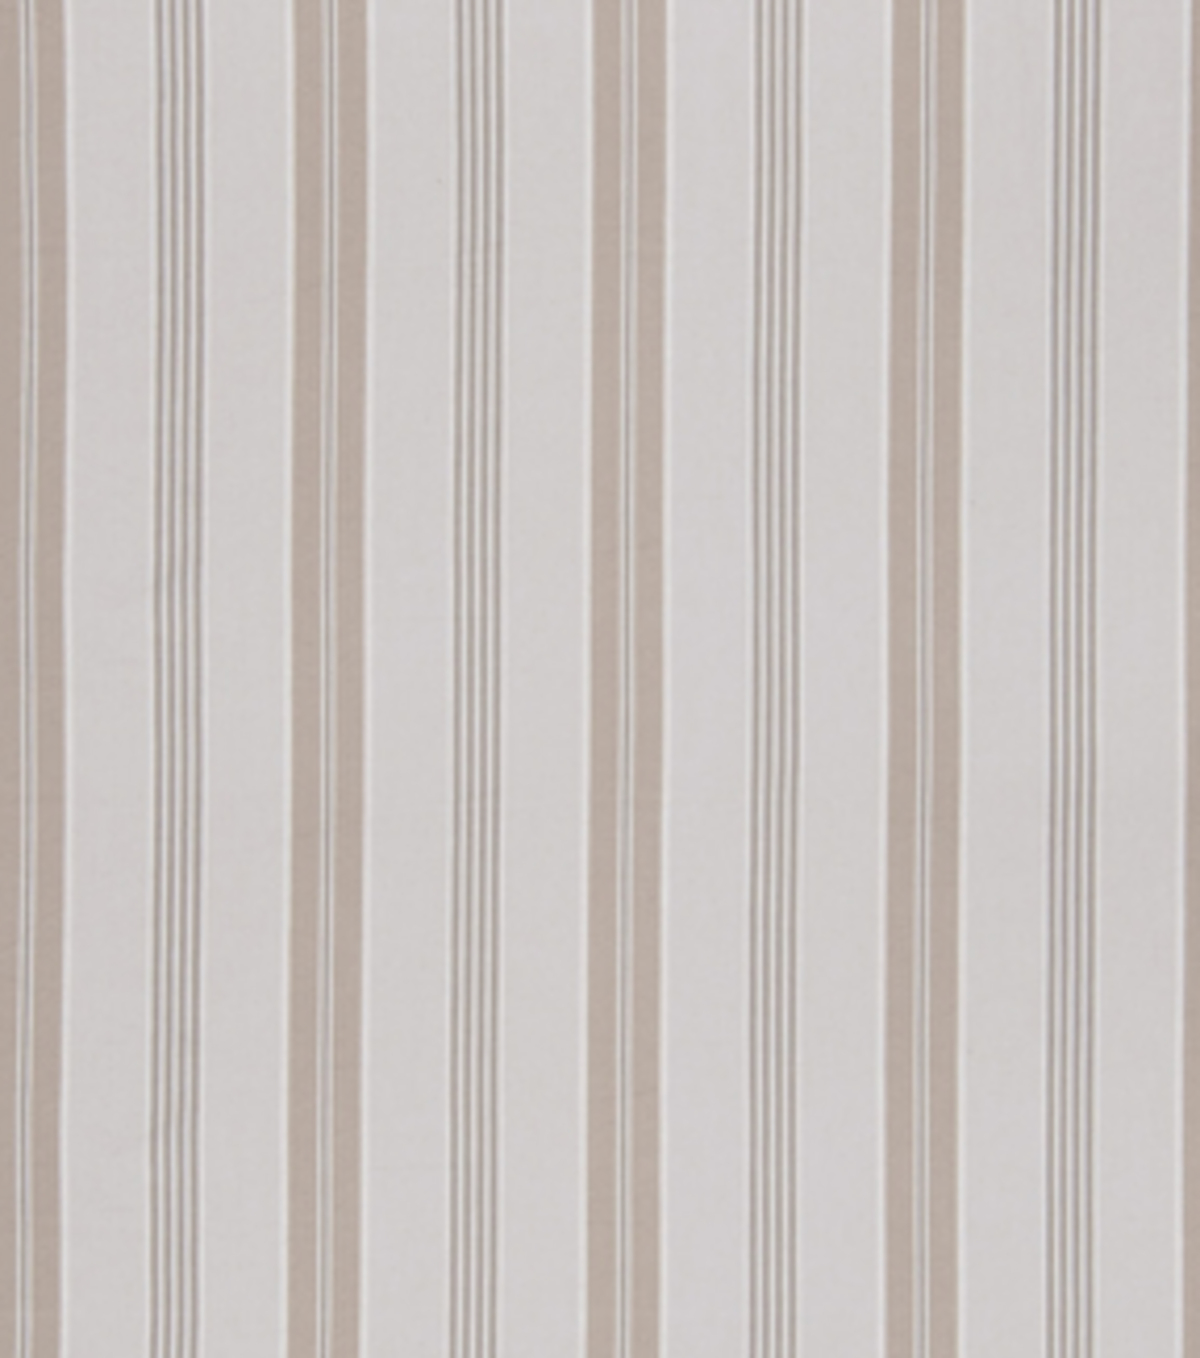 Home Decor 8\u0022x8\u0022 Fabric Swatch-French General  Glamorous Linen